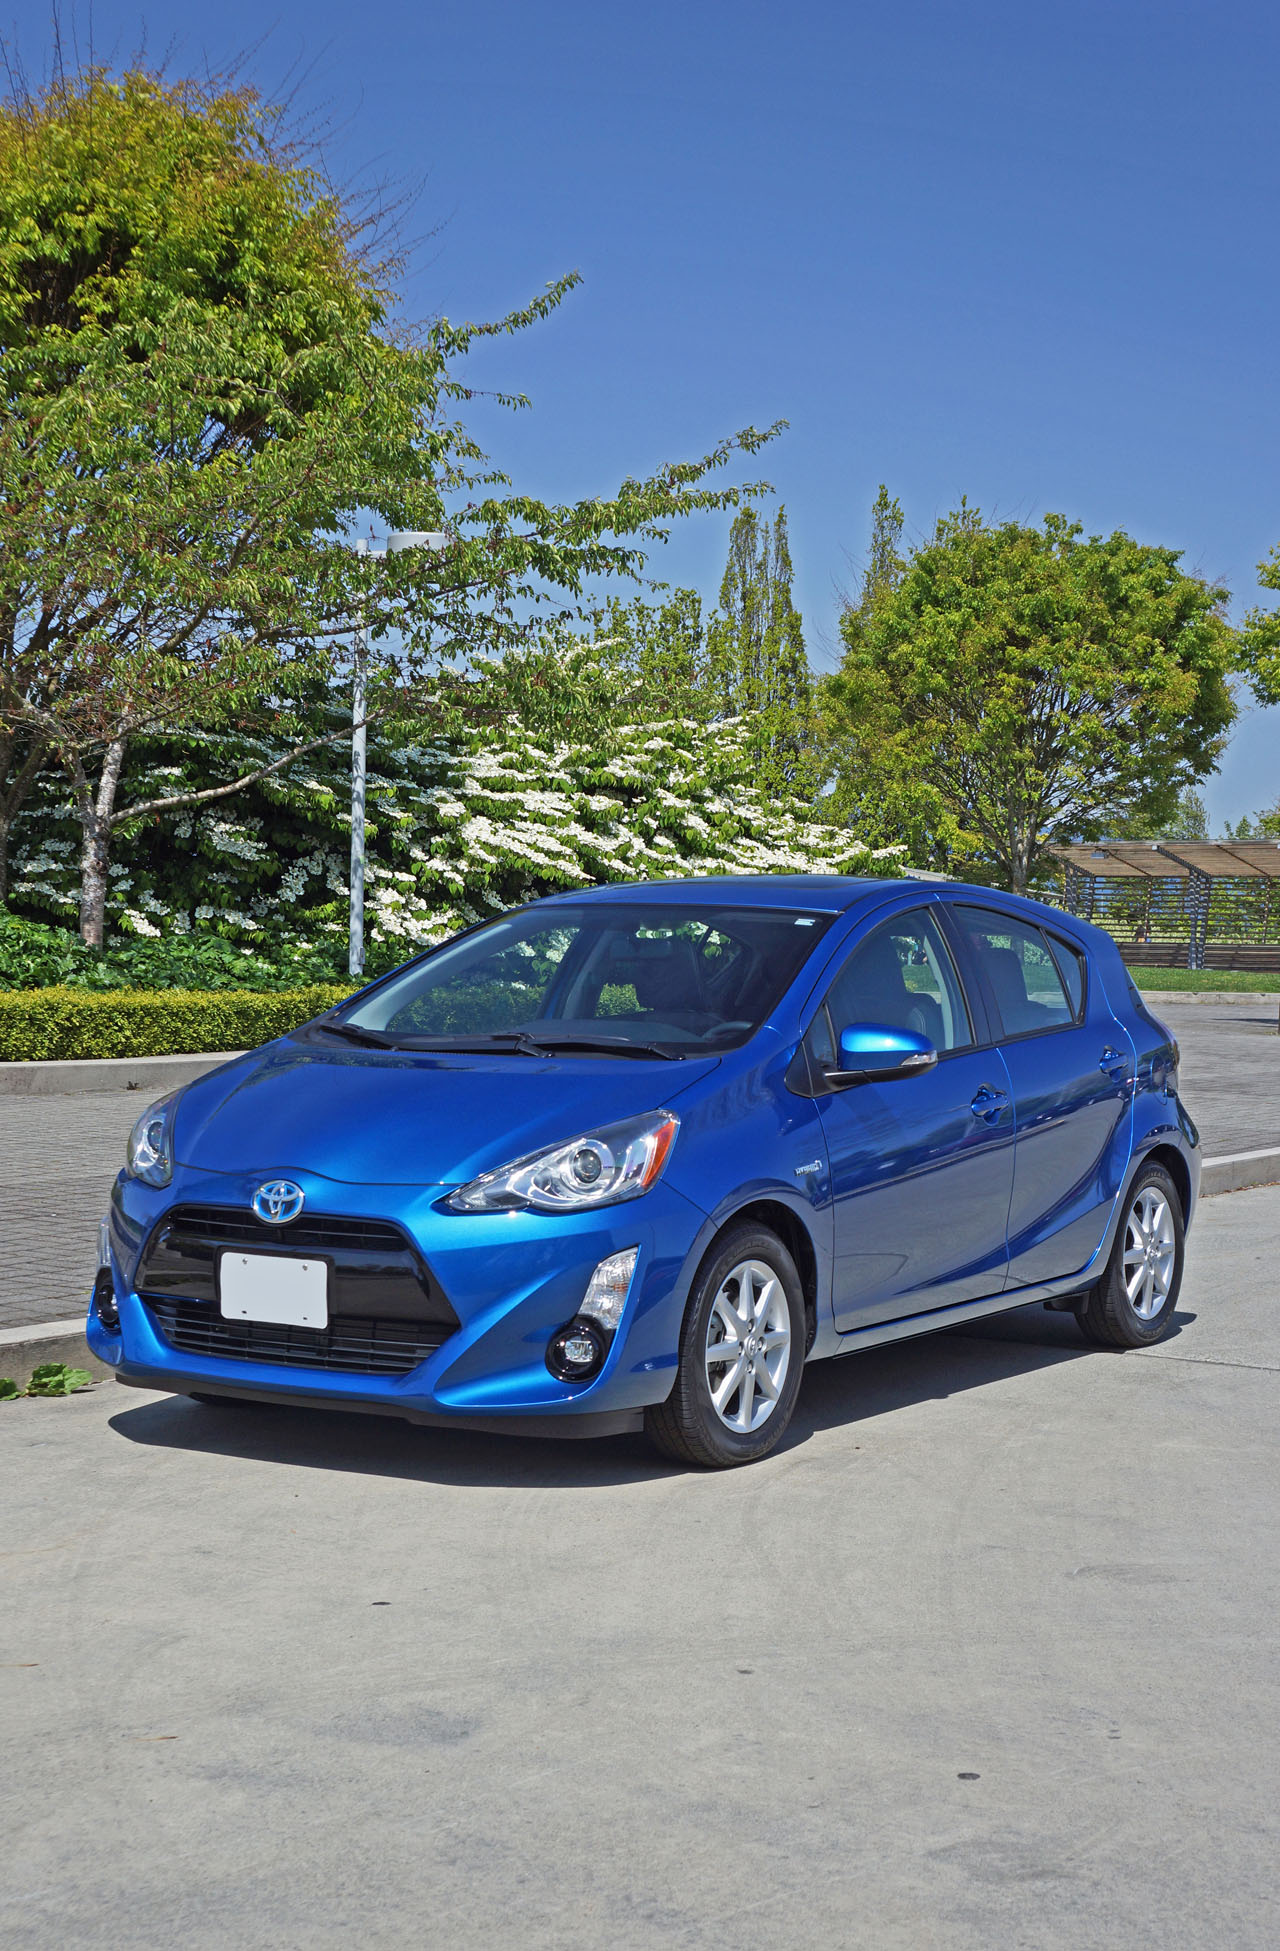 australia caradvice prius c toyota affordable s priusc car australias becomes hybrid tech most i toy